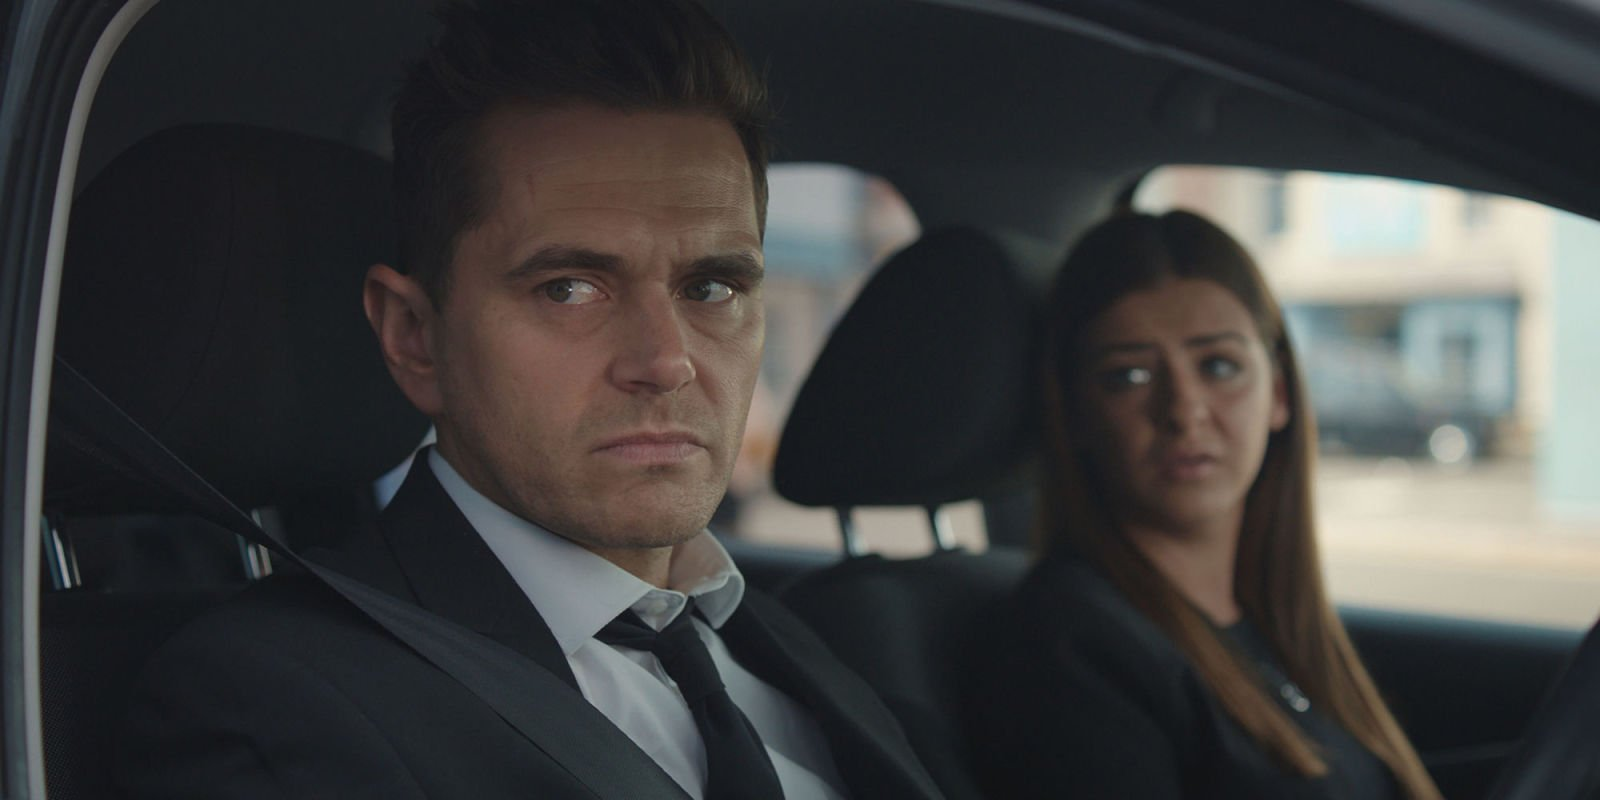 Casualty's Iain Dean makes life-changing decision this week after Sam Nicholls funeral drama